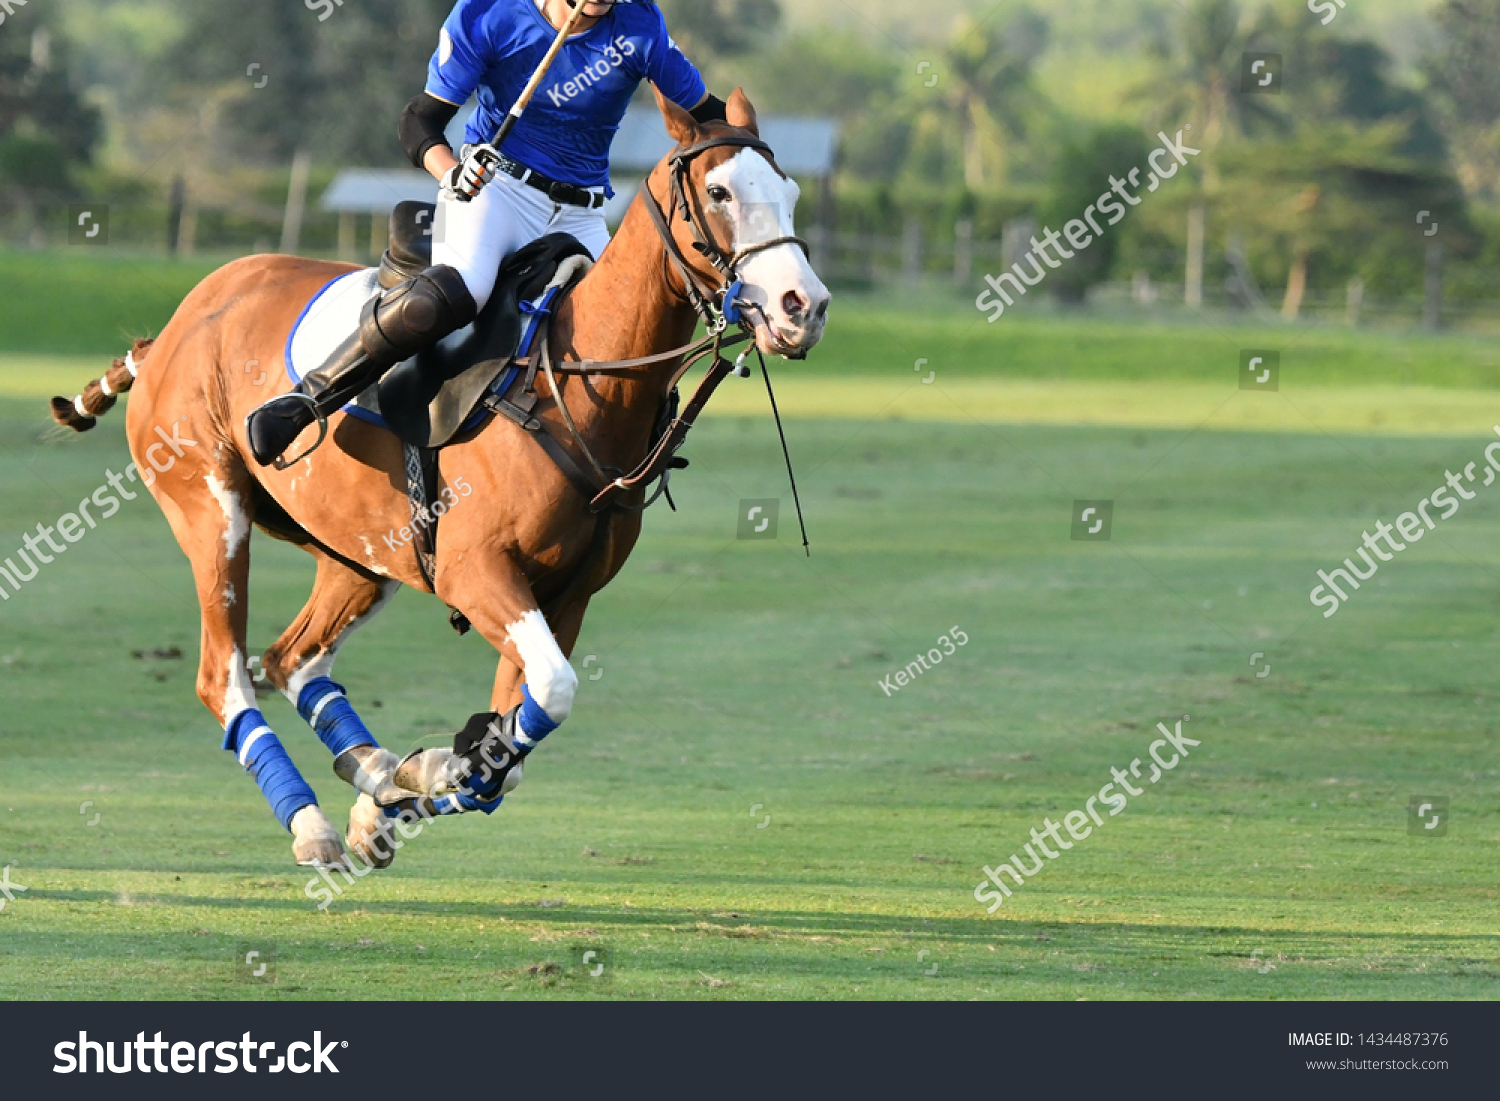 One Polo Horse Player Ridingaction Horse Stock Photo Edit Now 1434487376